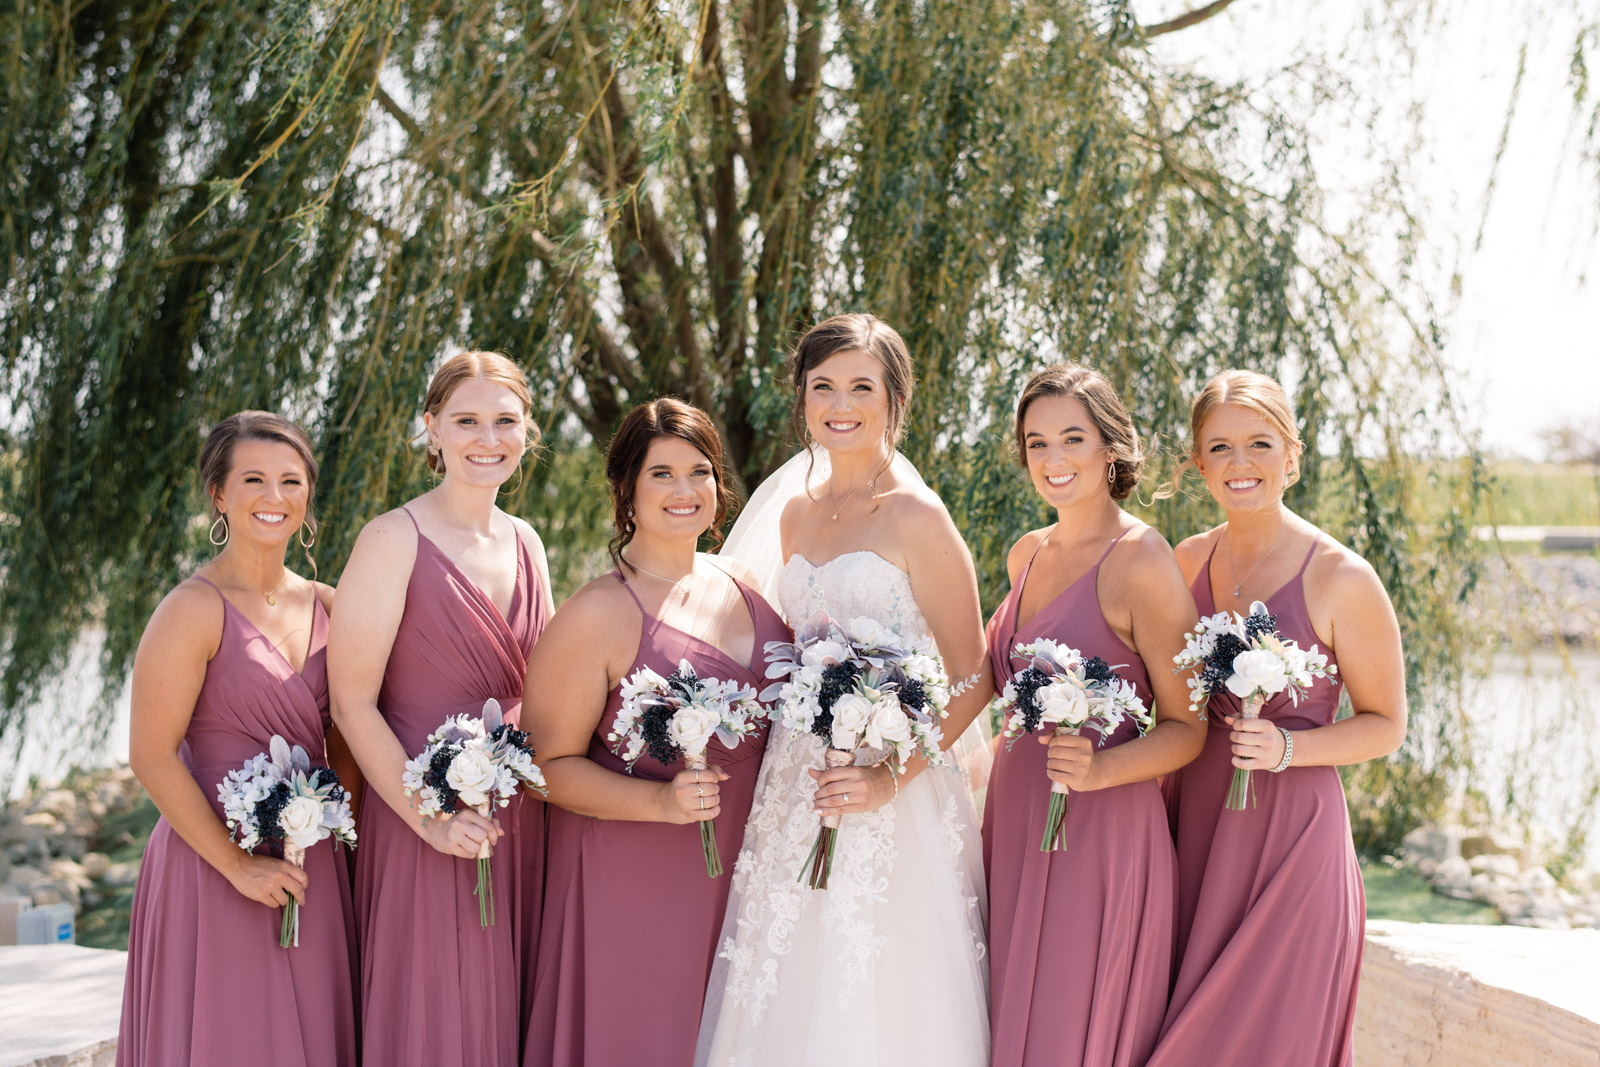 bridesmaids in purple dresses by willow tree epic event center wedding venue